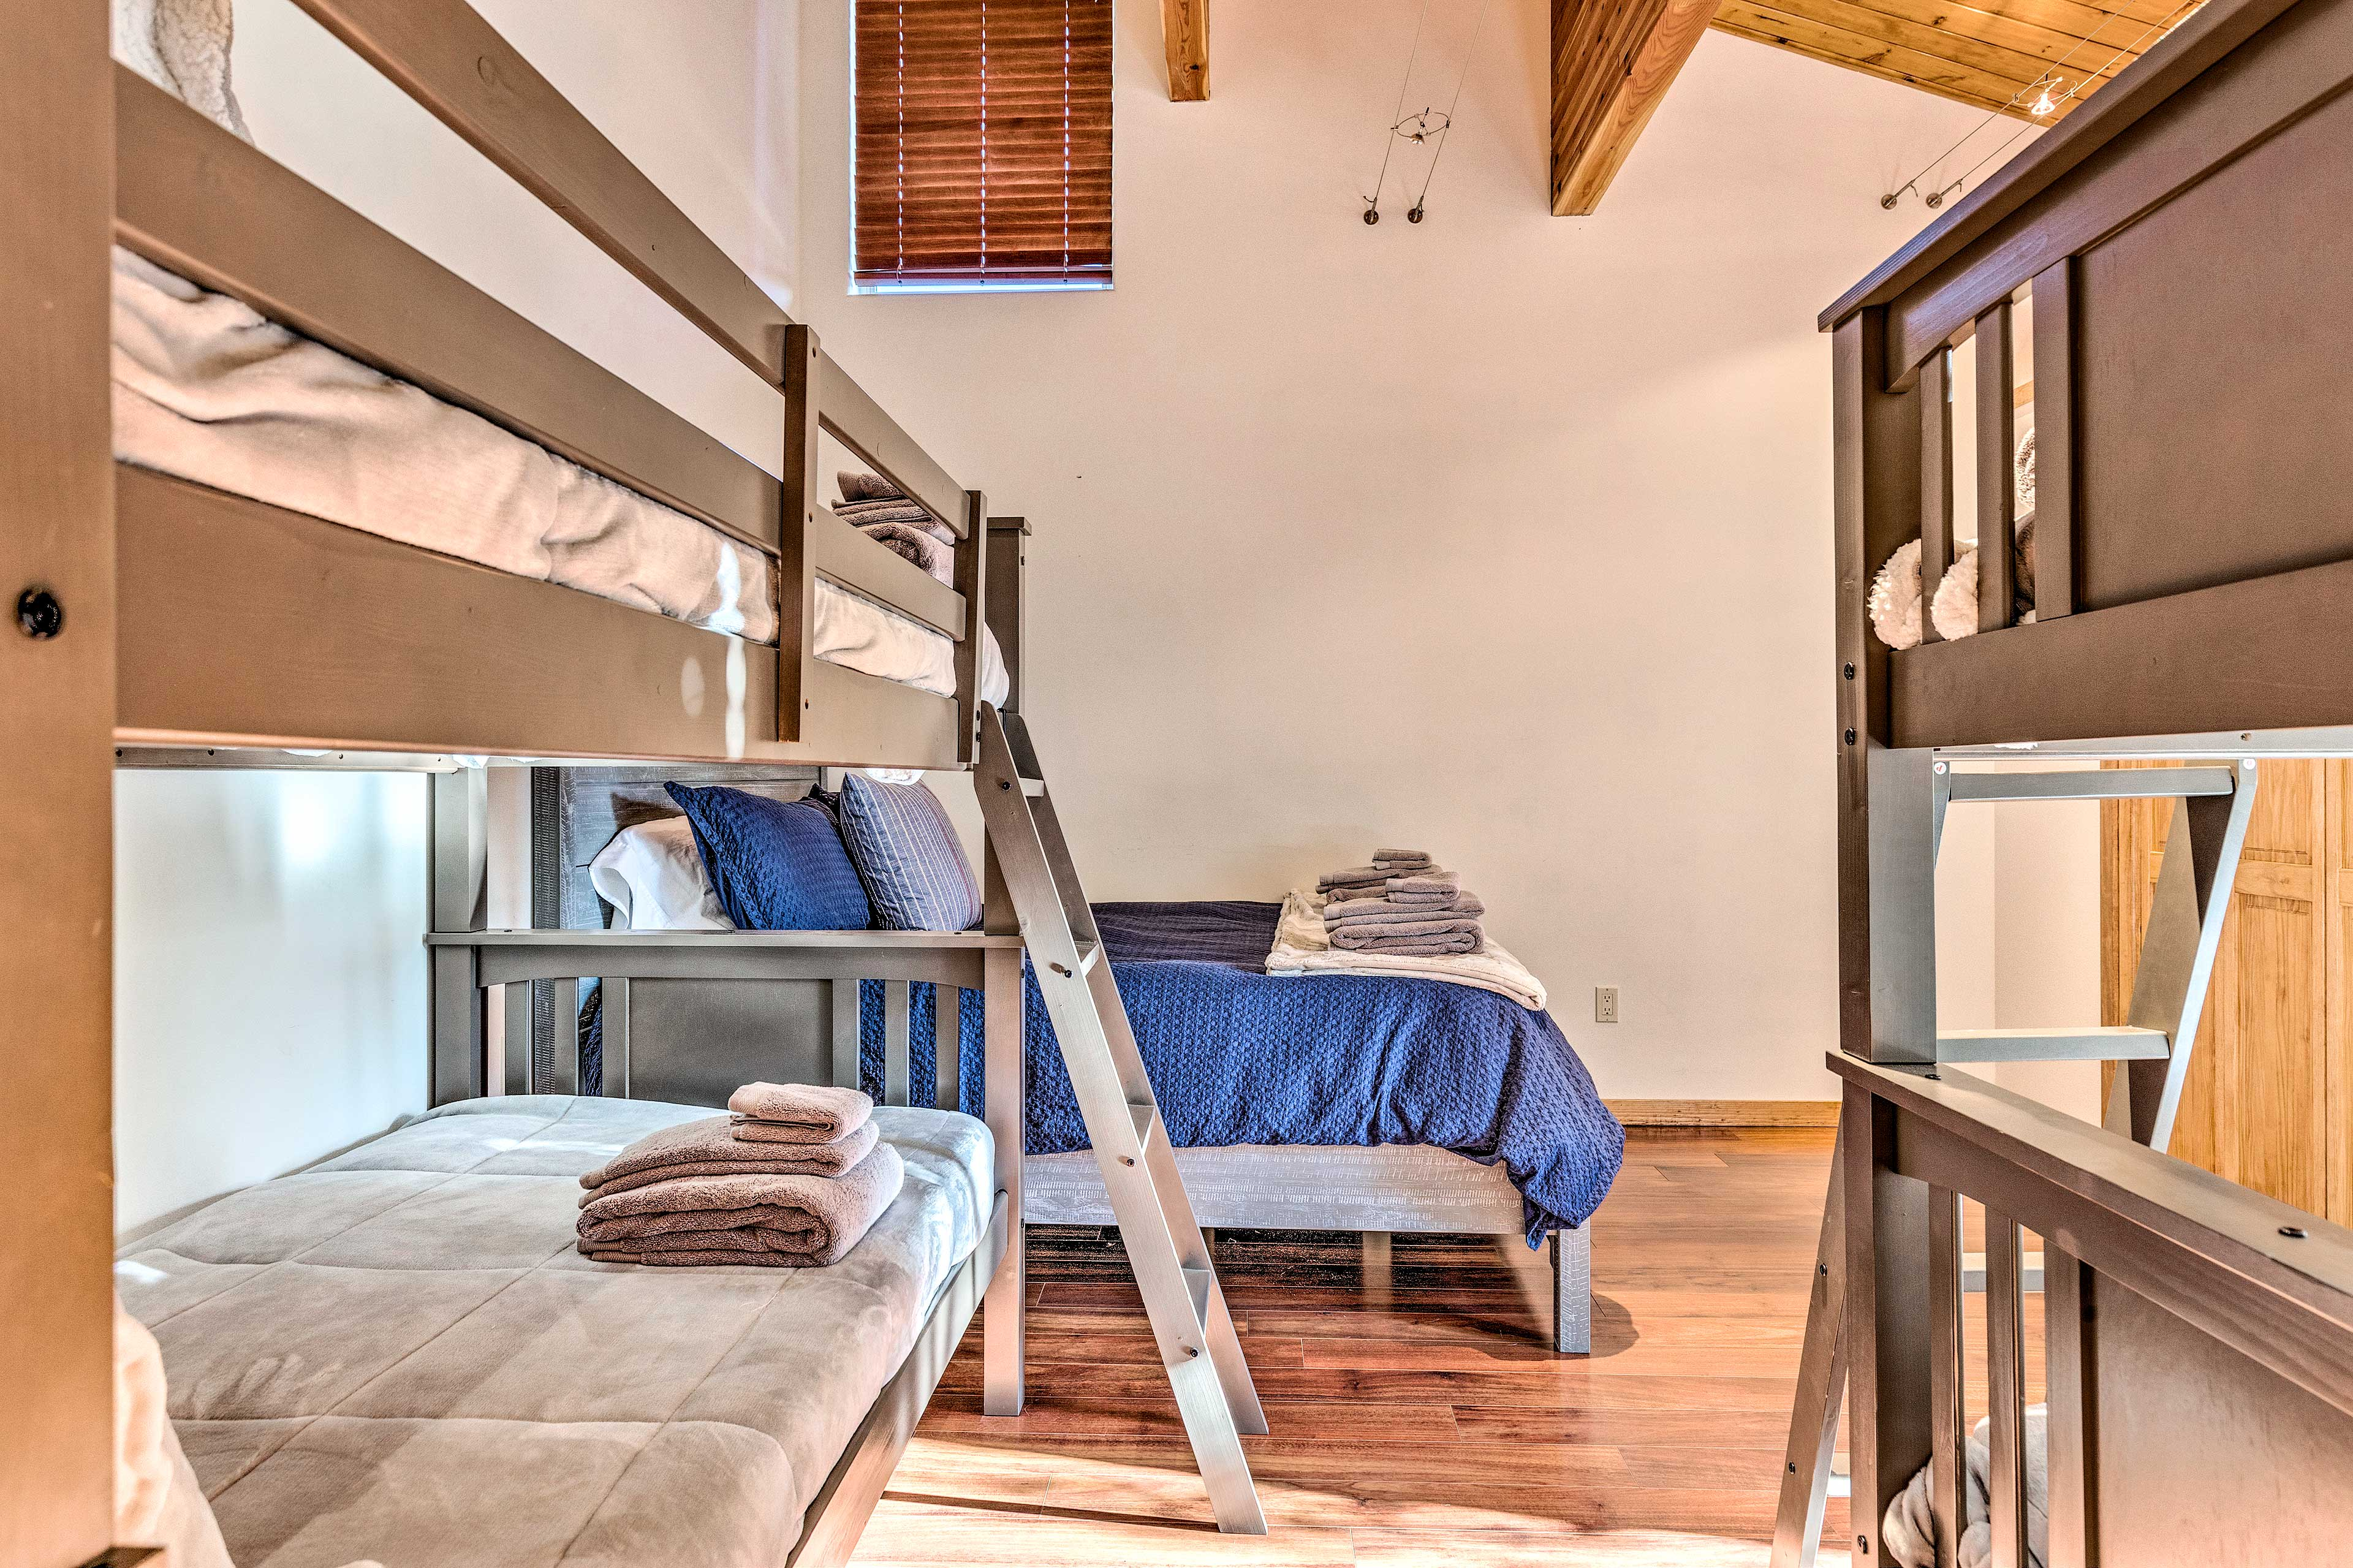 This room features a queen bed and bunk beds.